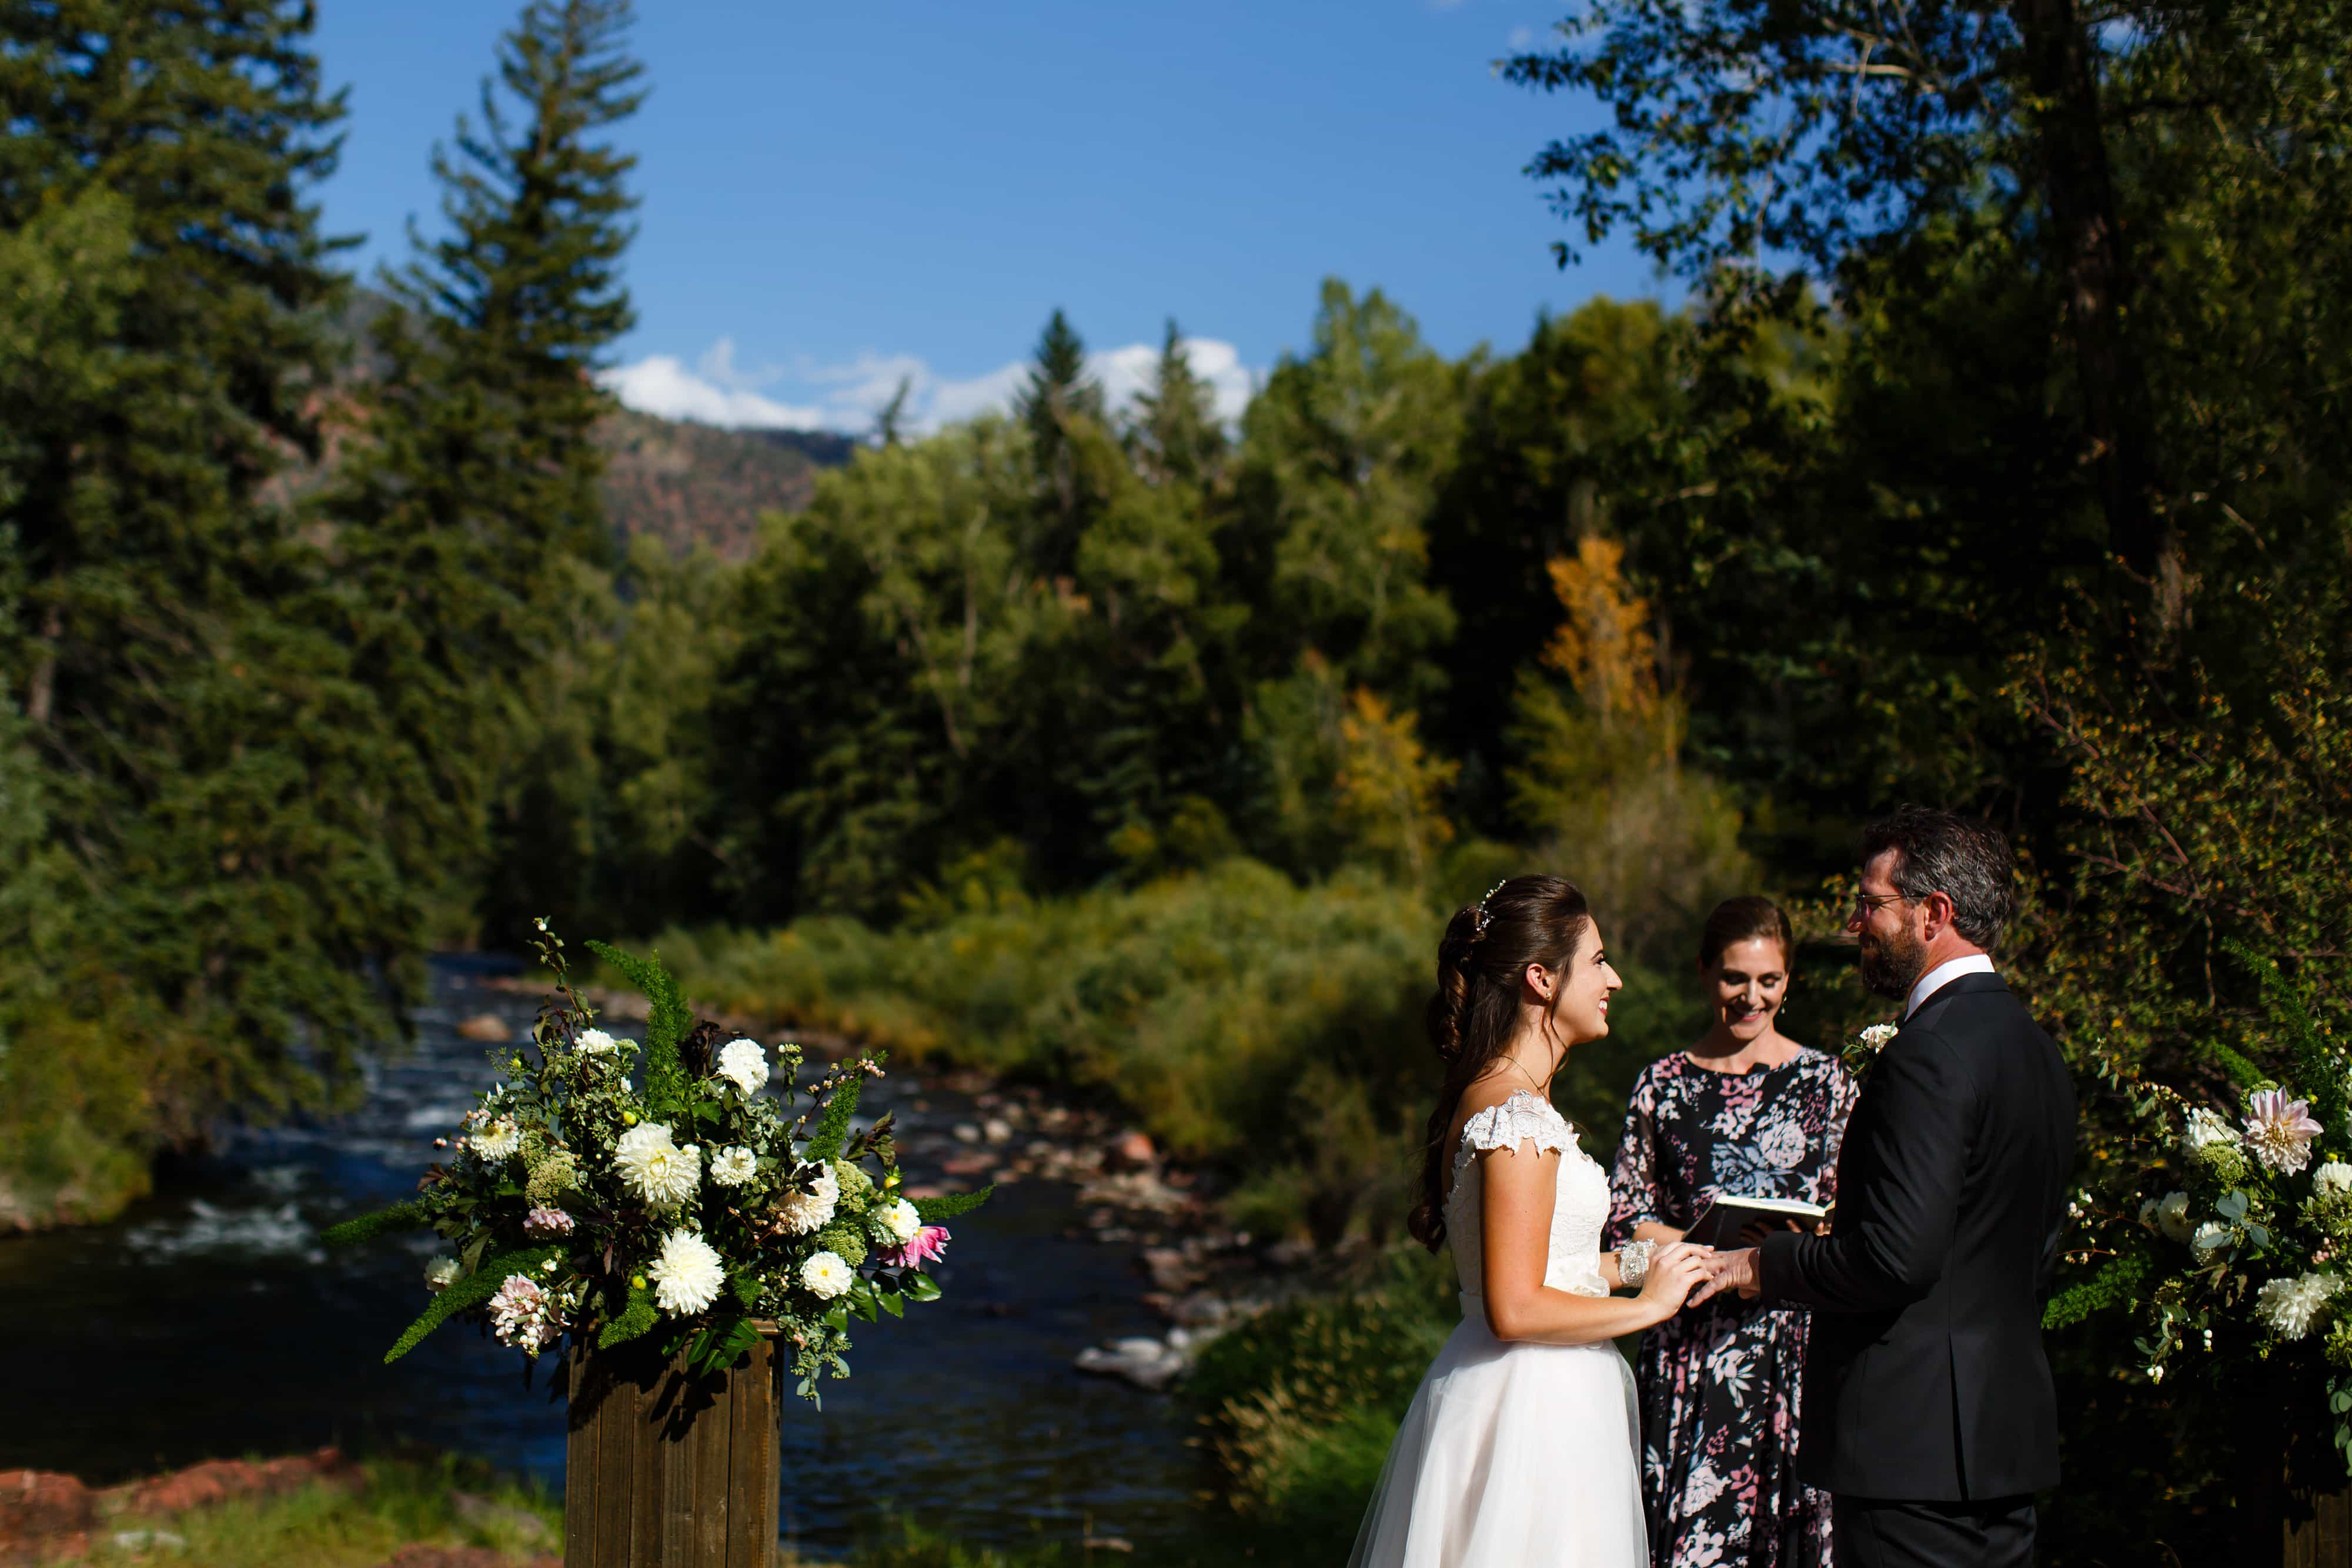 Mallory and Daniel exchange rings at Snowmass Cottages